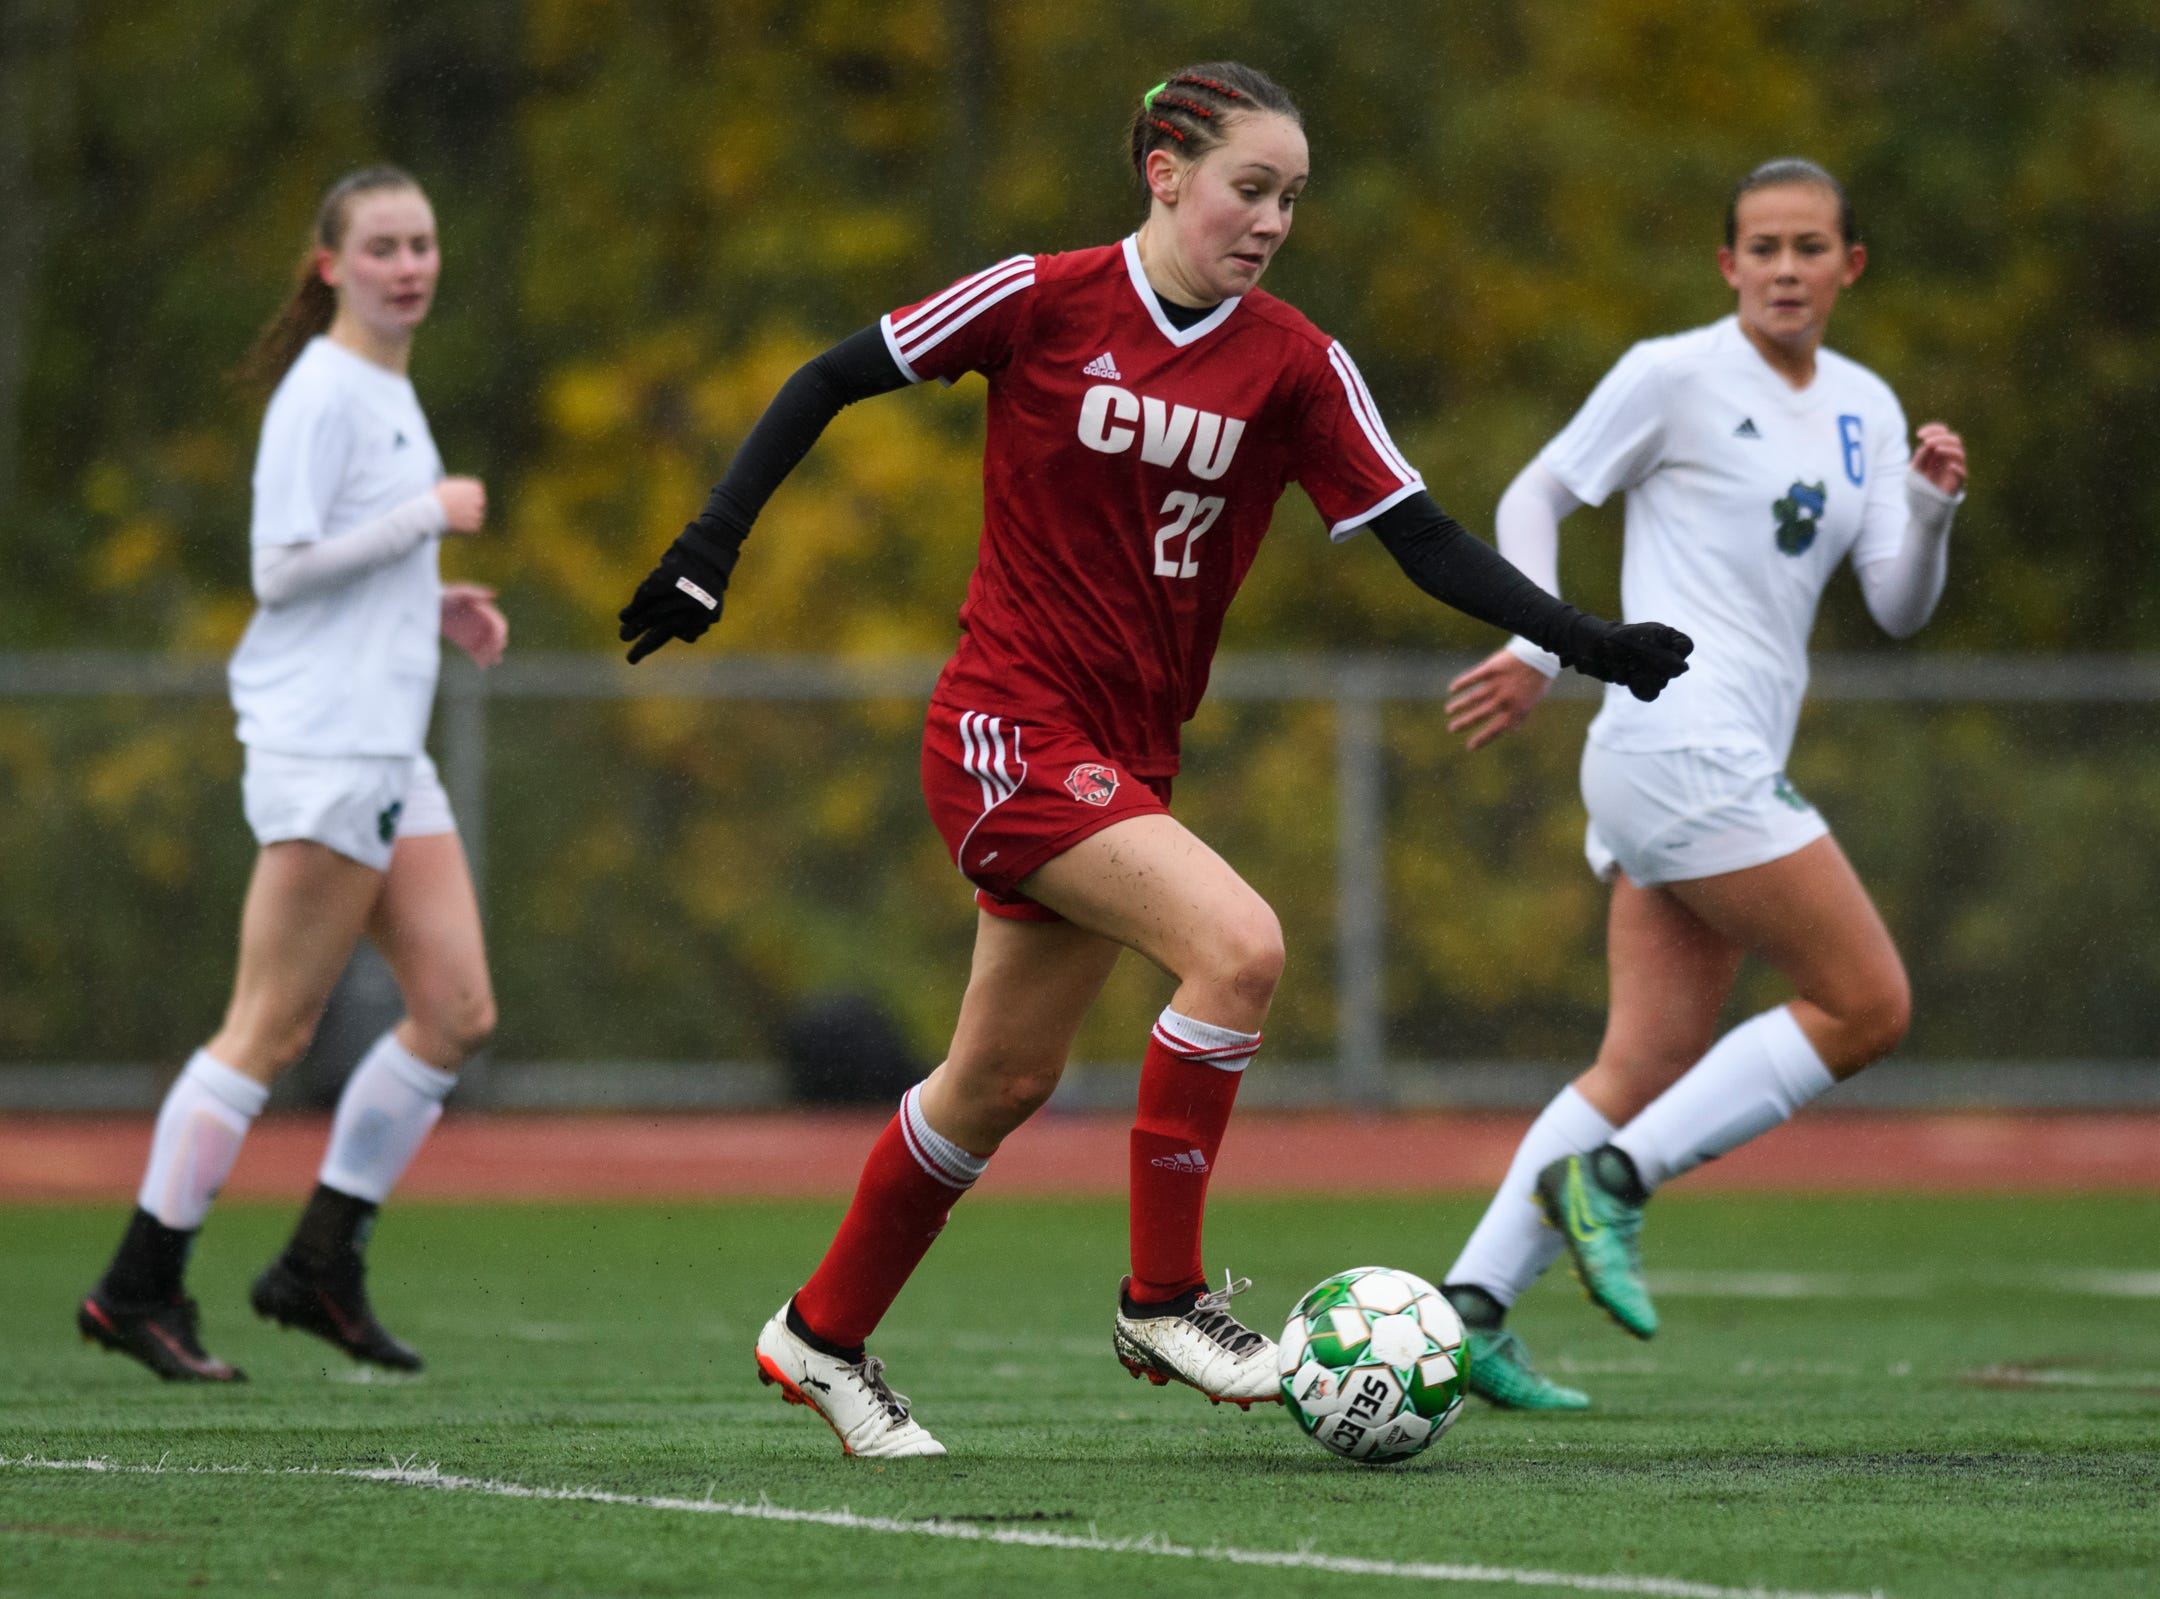 CVU's Josie Pecor (22) runs down the field with the ball during the division I girls soccer championship game between the Colchester Lakers and the Champlain Valley Union Redhawks at Buck Hard Field on Saturday morning November 3, 2018 in Burlington.